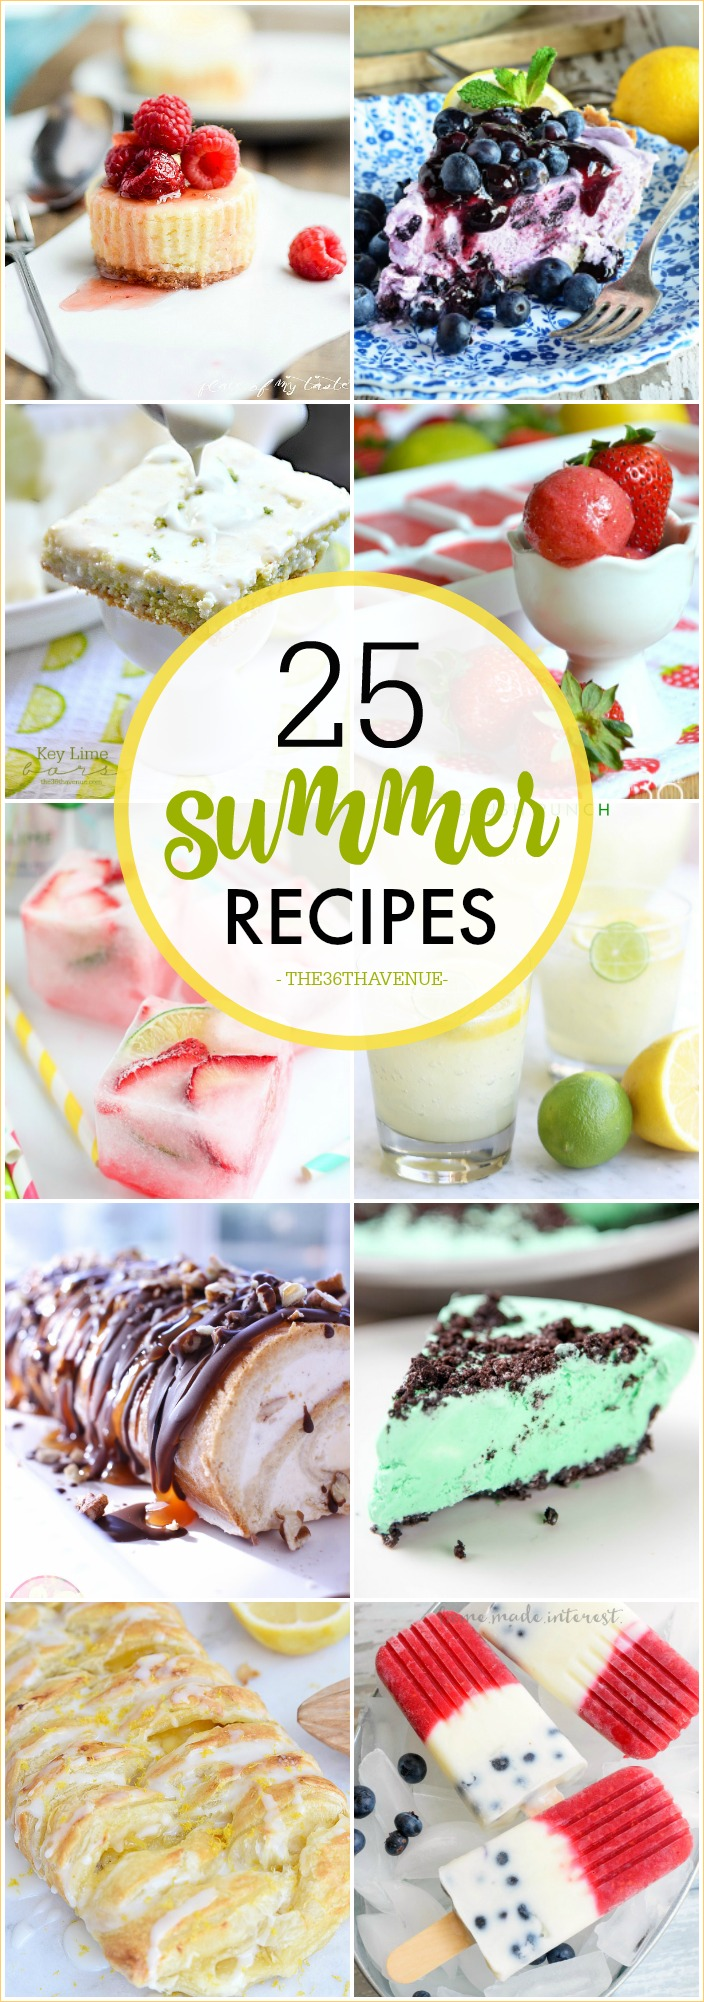 25 Summer Recipes at the36thavenue.com